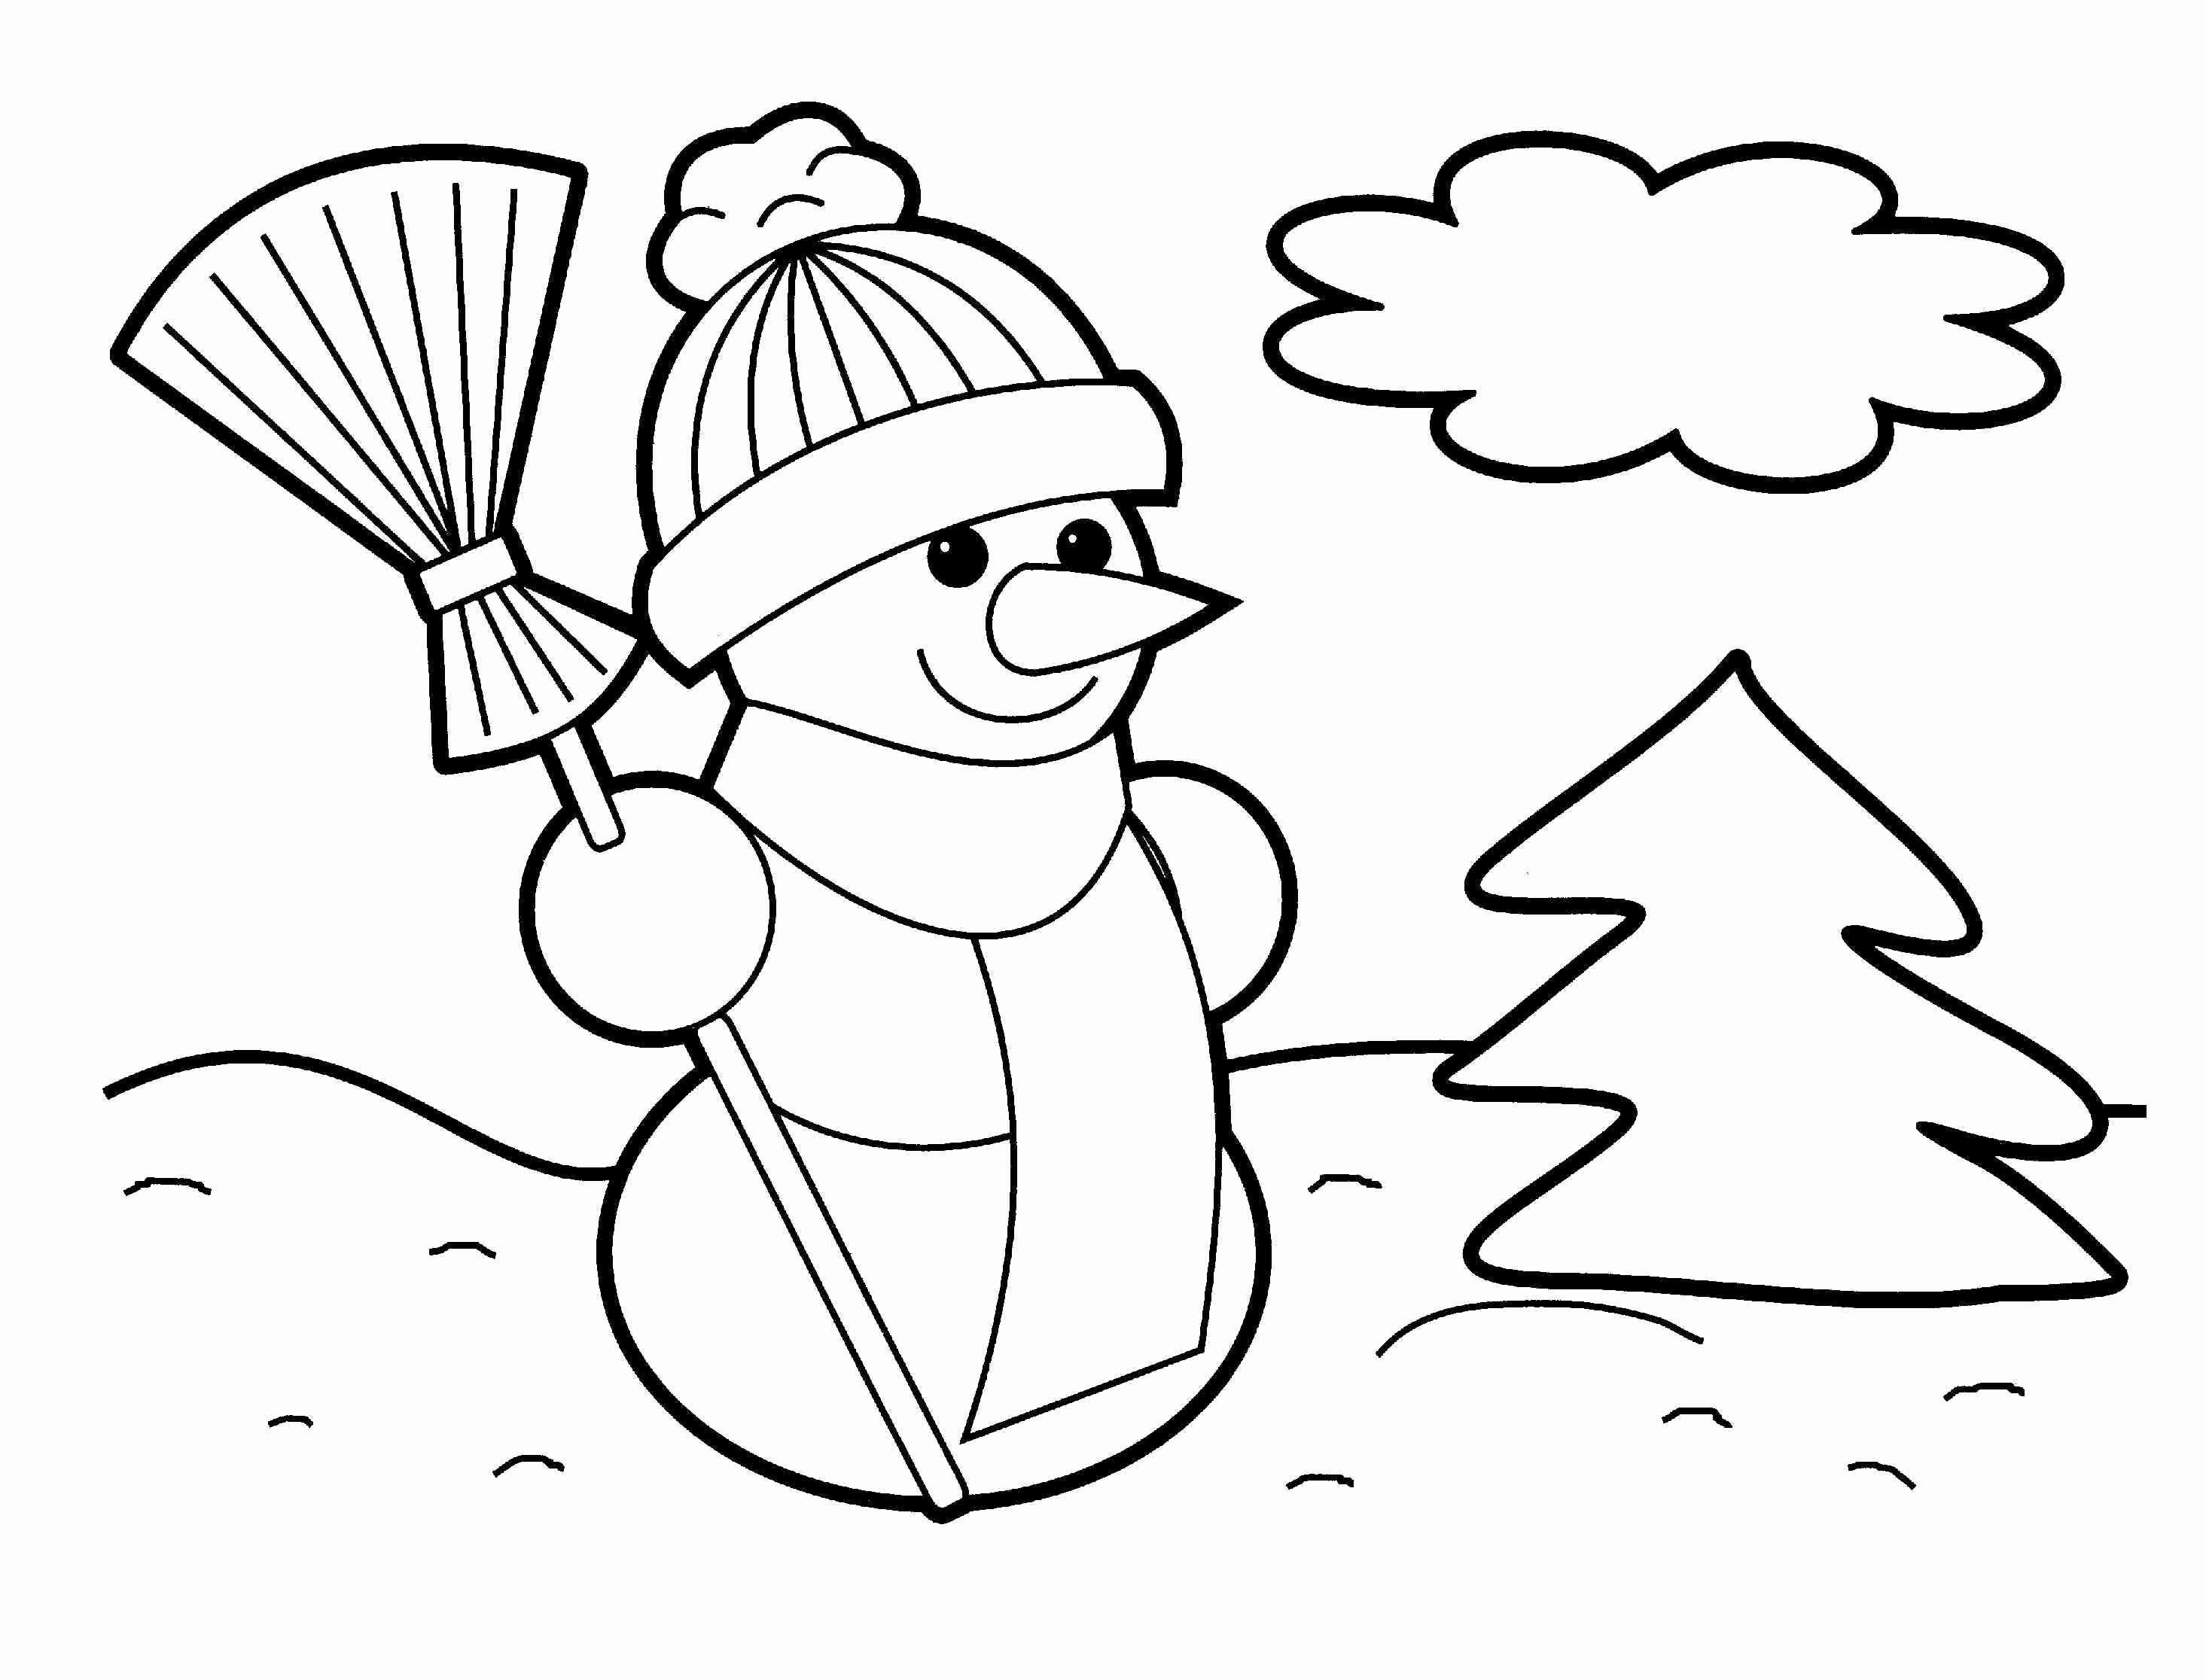 Christmas Ornament Coloring Sheet With Printable Sheets Ornaments